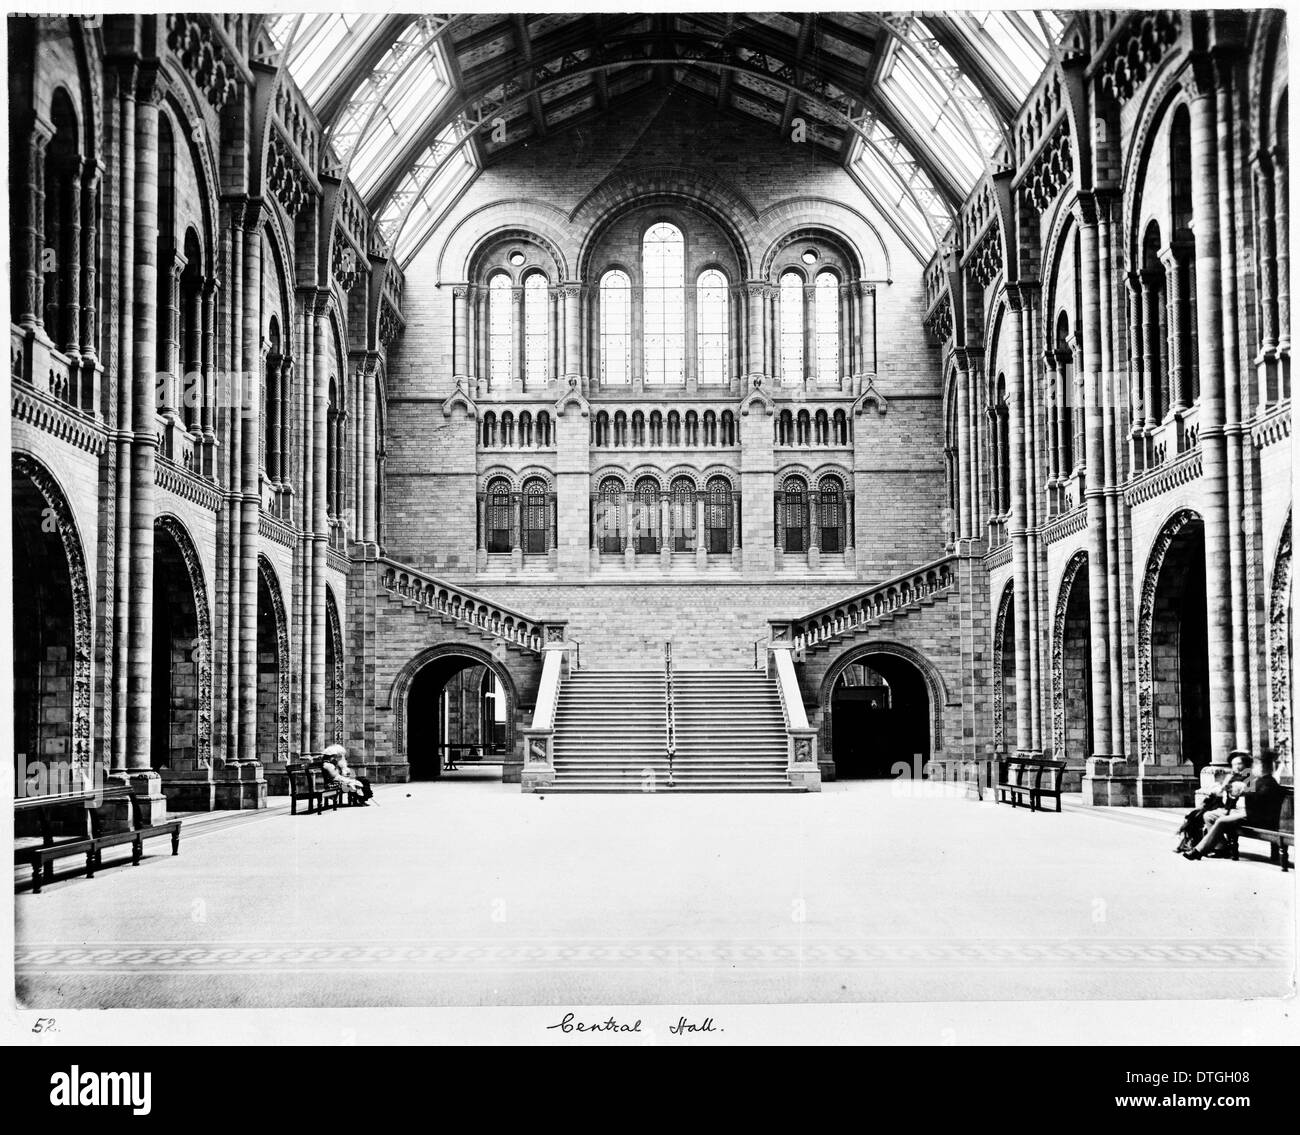 The Central Hall of the Natural History Museum, London - Stock Image